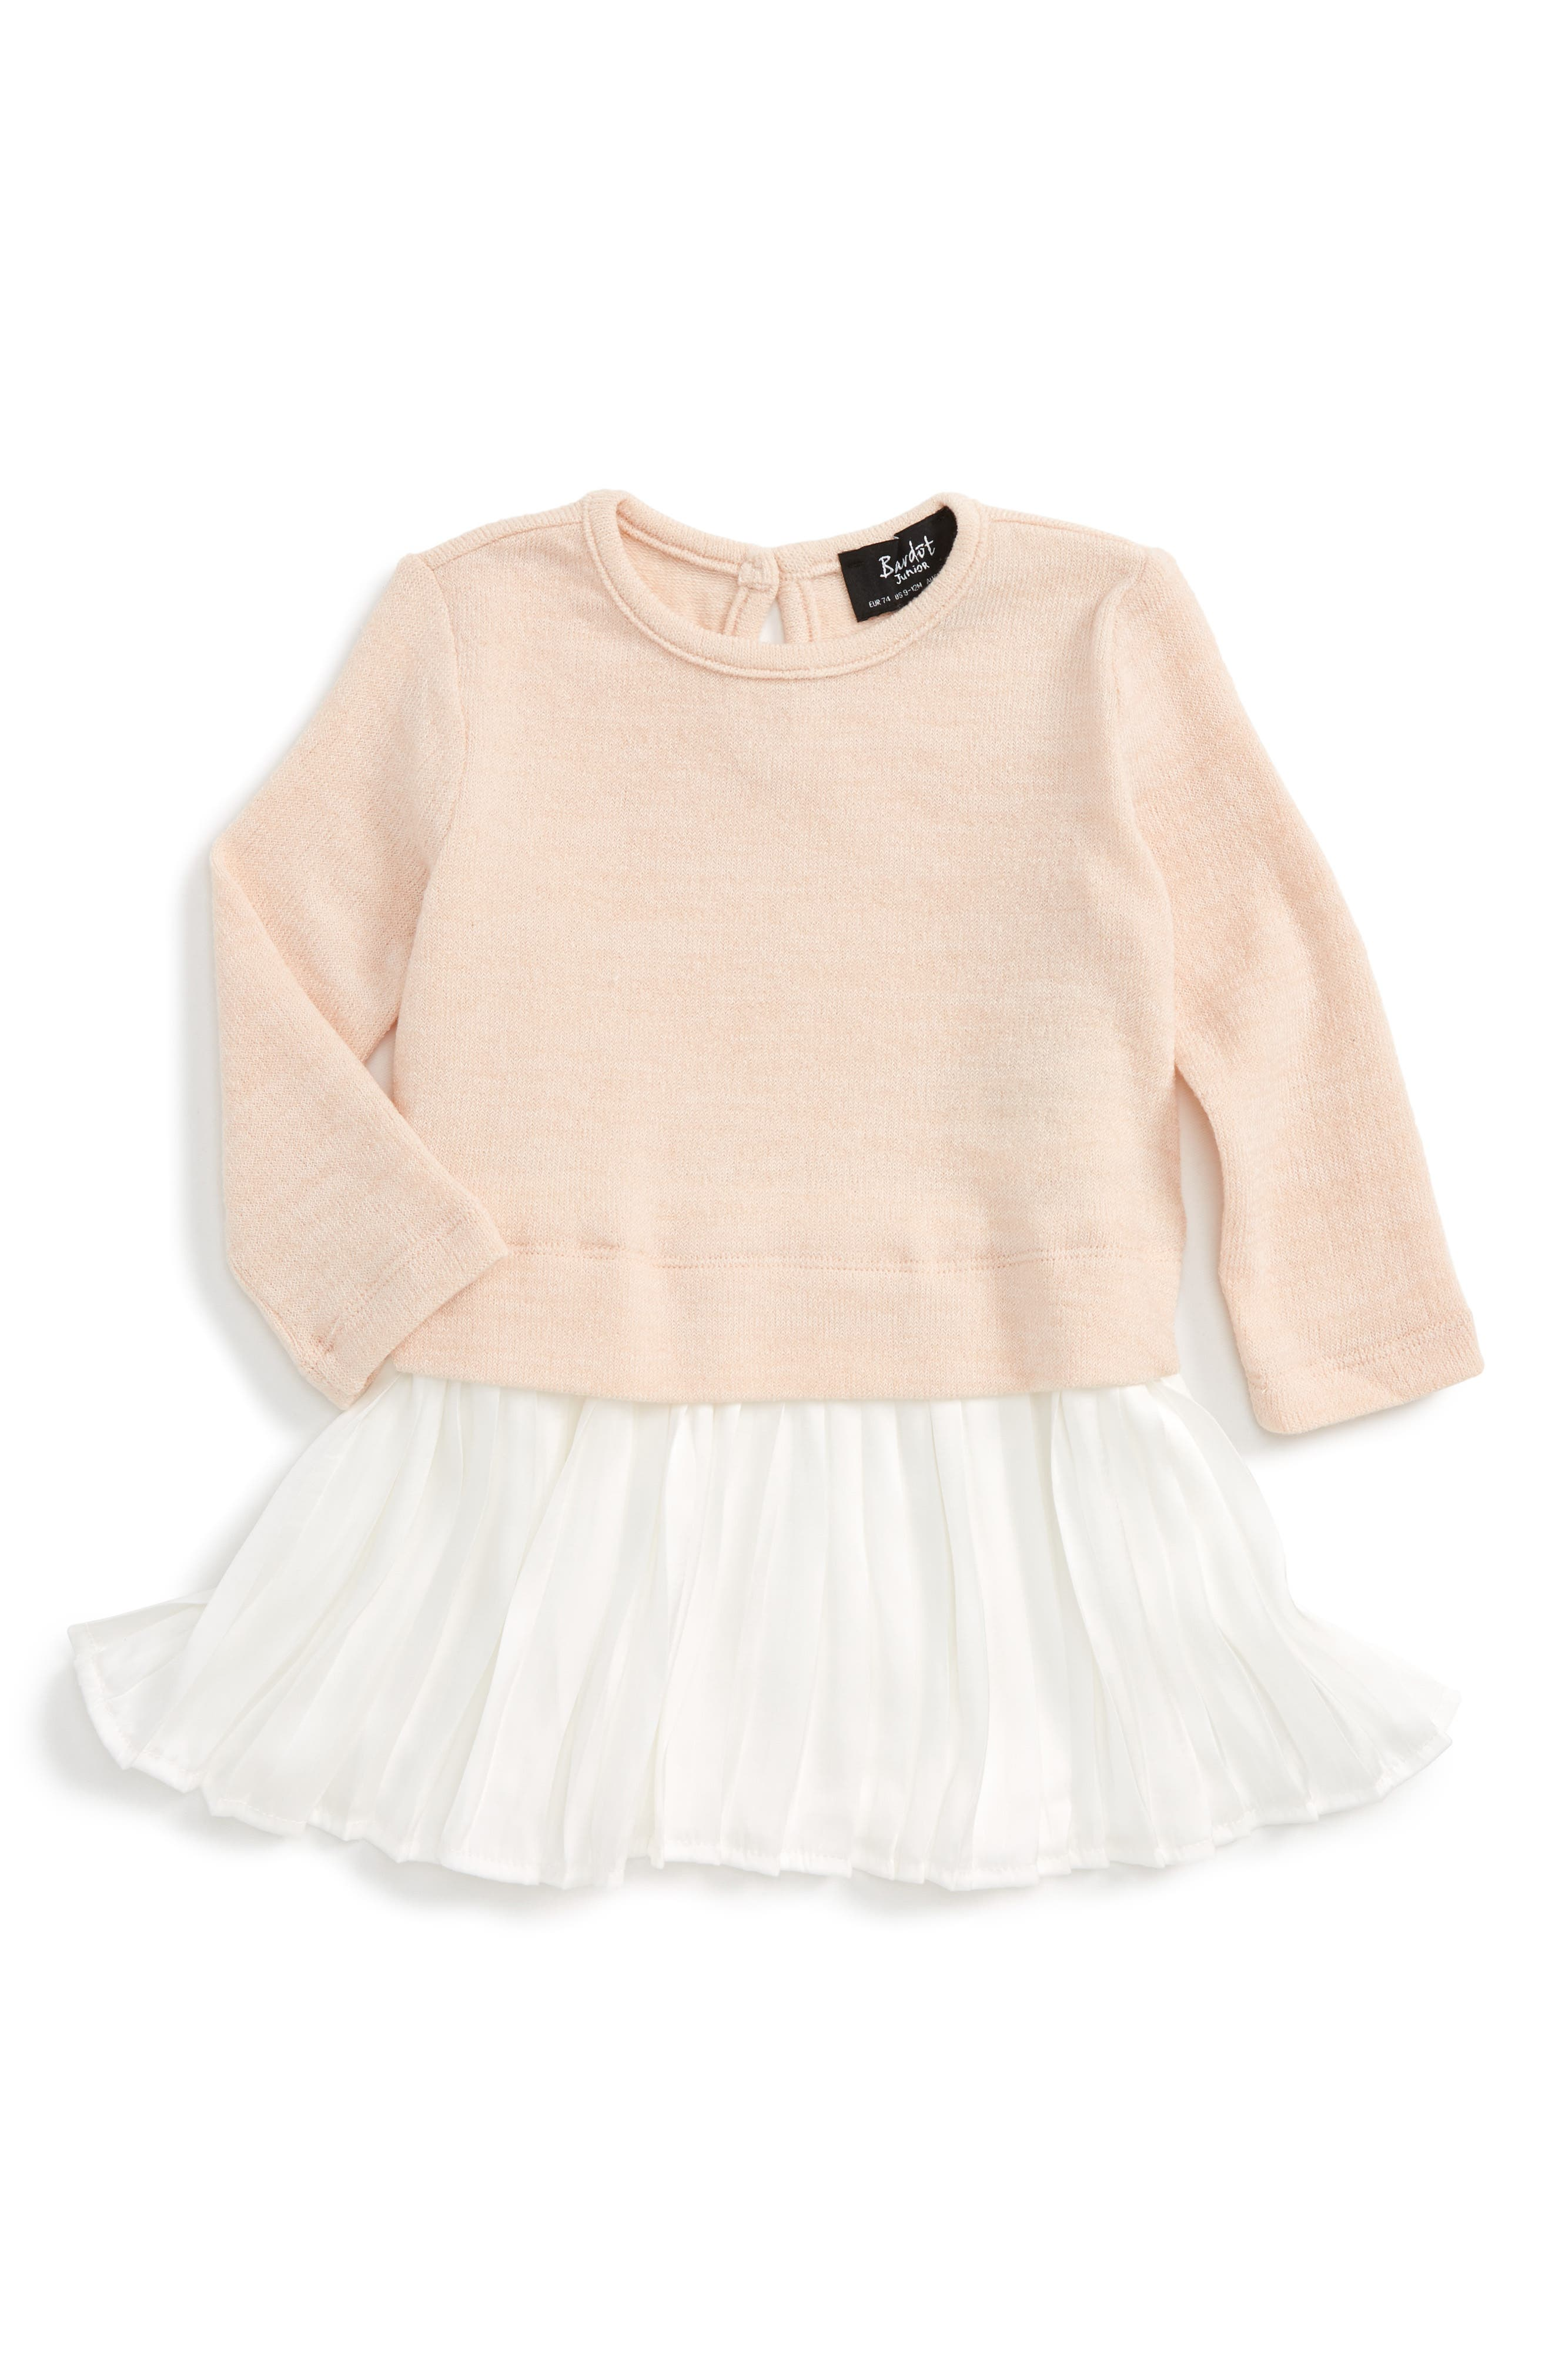 Pleated Sweater Dress,                         Main,                         color, Dusty Pink